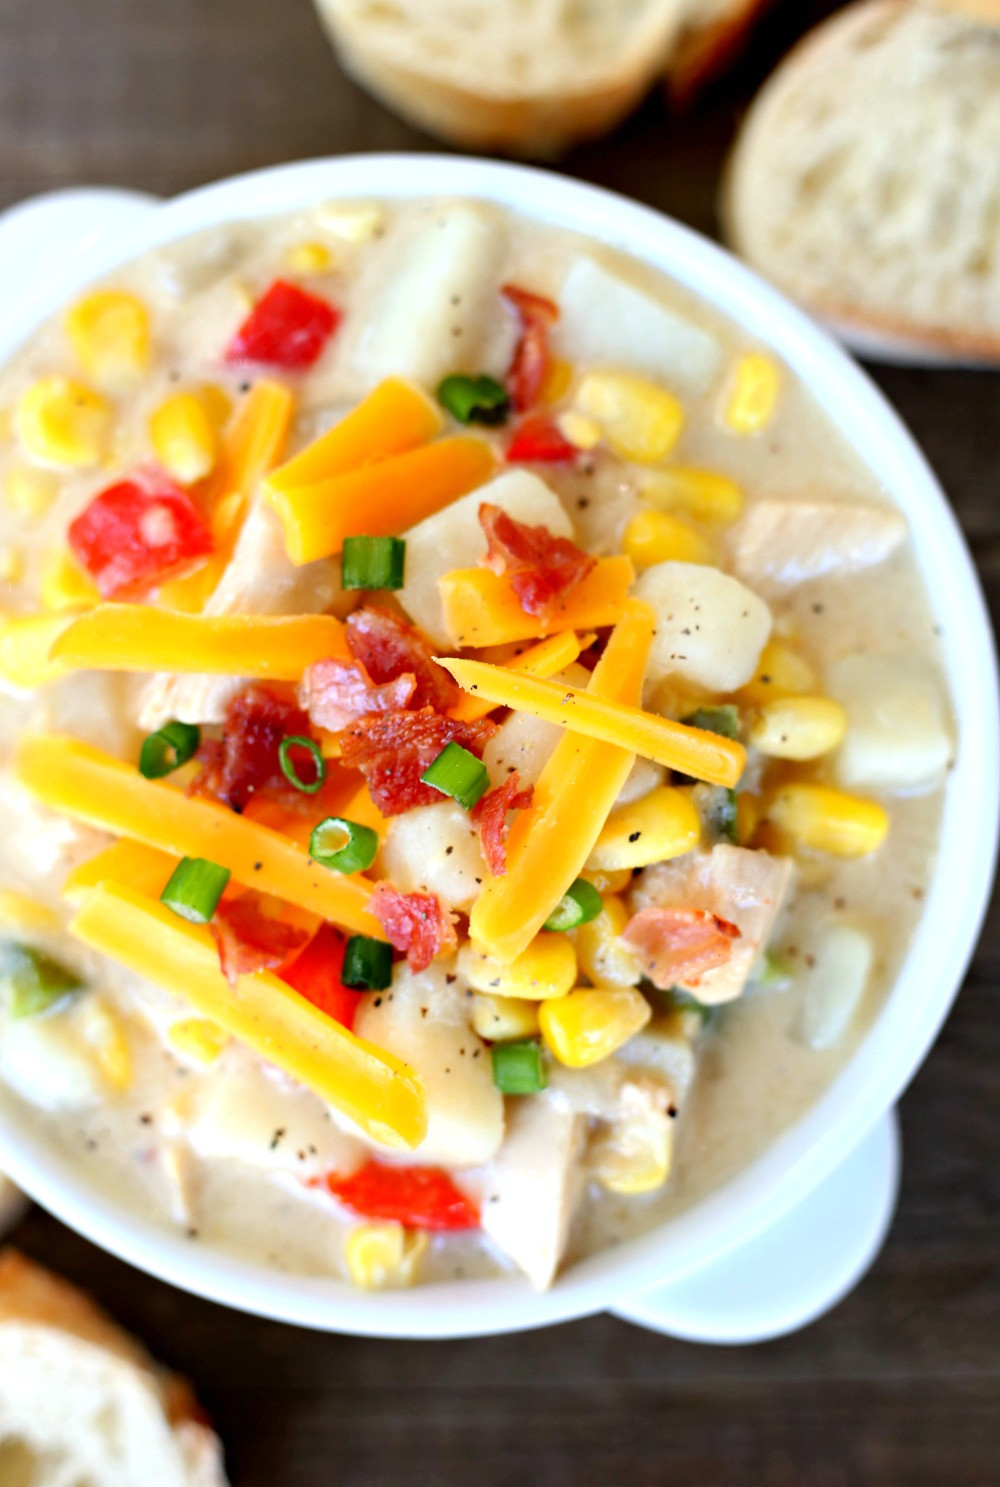 Panera Summer Corn Chowder Ingredients  Corn Chowder with Potatoes and Chicken Happy Go Lucky